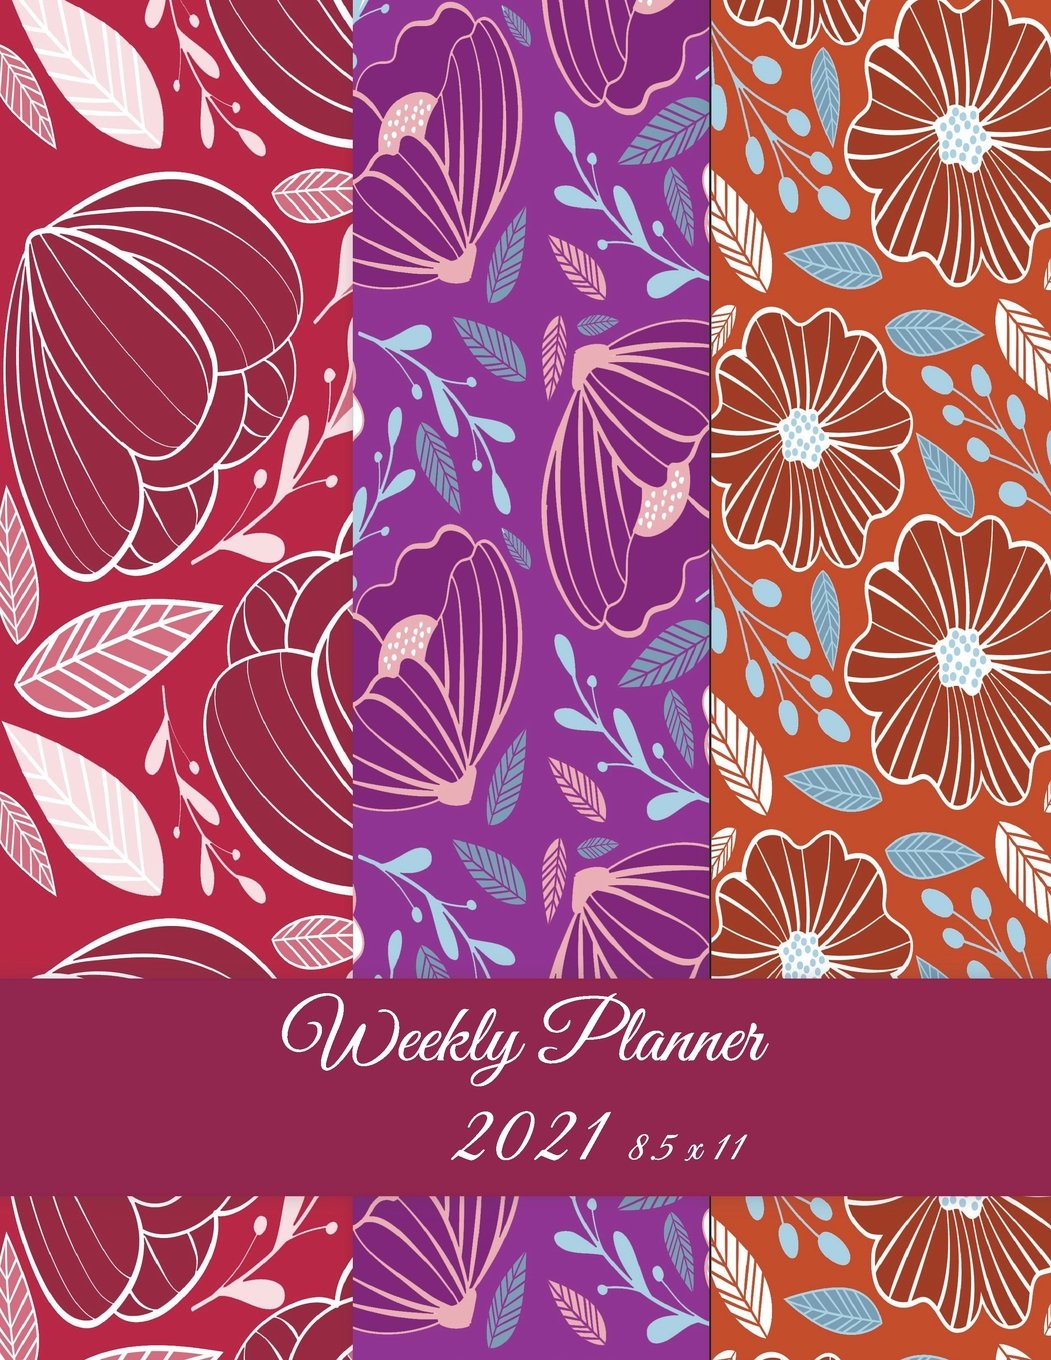 """Weekly Planner 2021 8.5 x 11: Red Color Flowers, Weekly Calendar Book 2021, Weekly/Monthly/Yearly Calendar Journal, Large 8.5"""" x 11"""" 365 Daily journal ... Agenda Planner, Calendar Schedule Organizer pdf epub"""